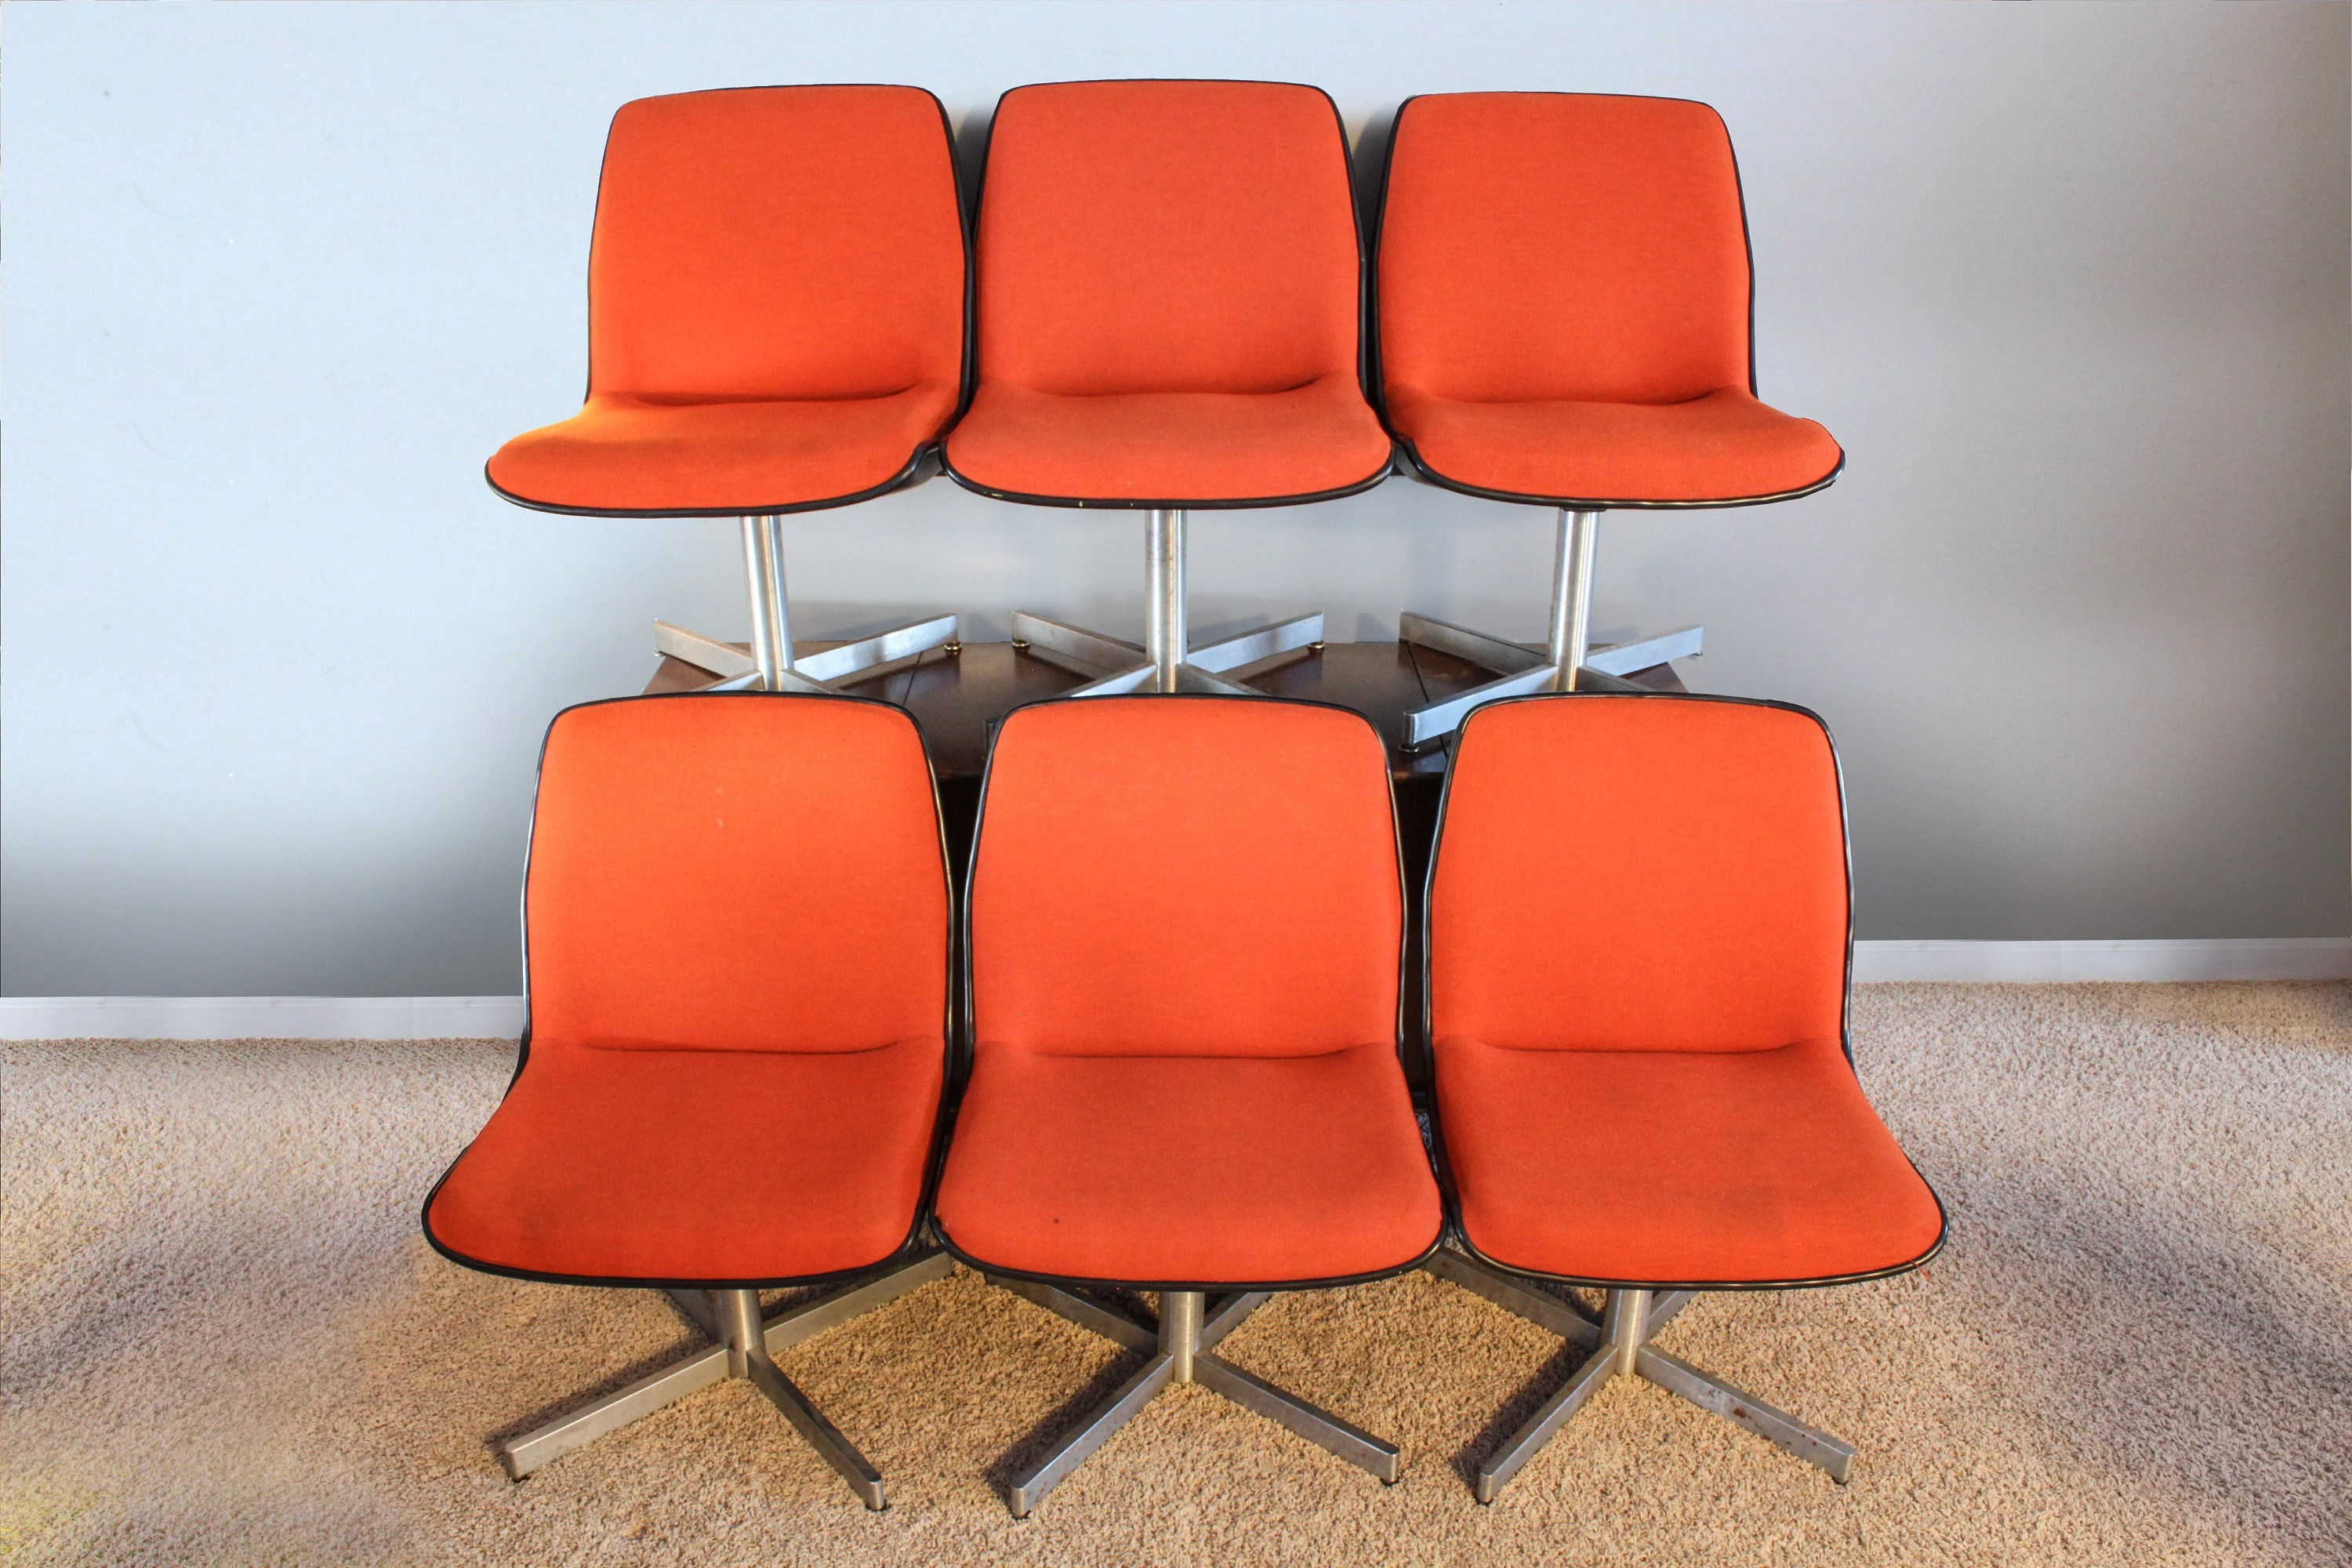 orange upholstered chair covers john lewis vintage mid century swivel chairs by etsy image 0